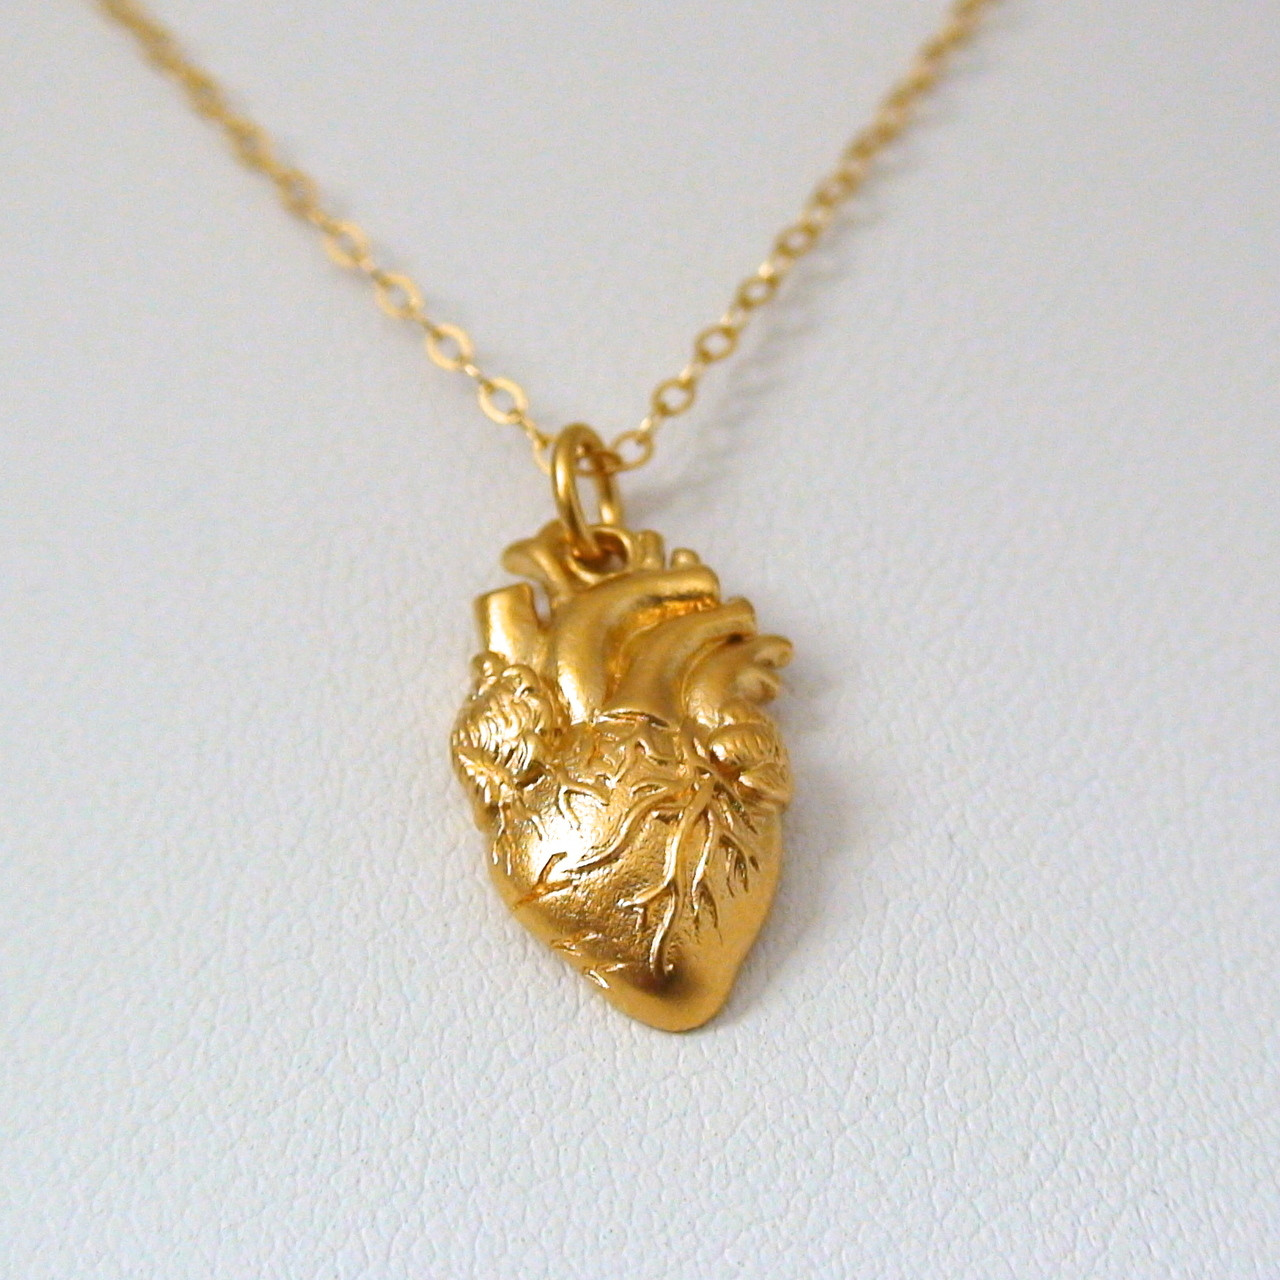 chains tiny collection product puffed us gifts treasures gift white category gold roberto treasurespuffed website pendant diamonds heart official with coin